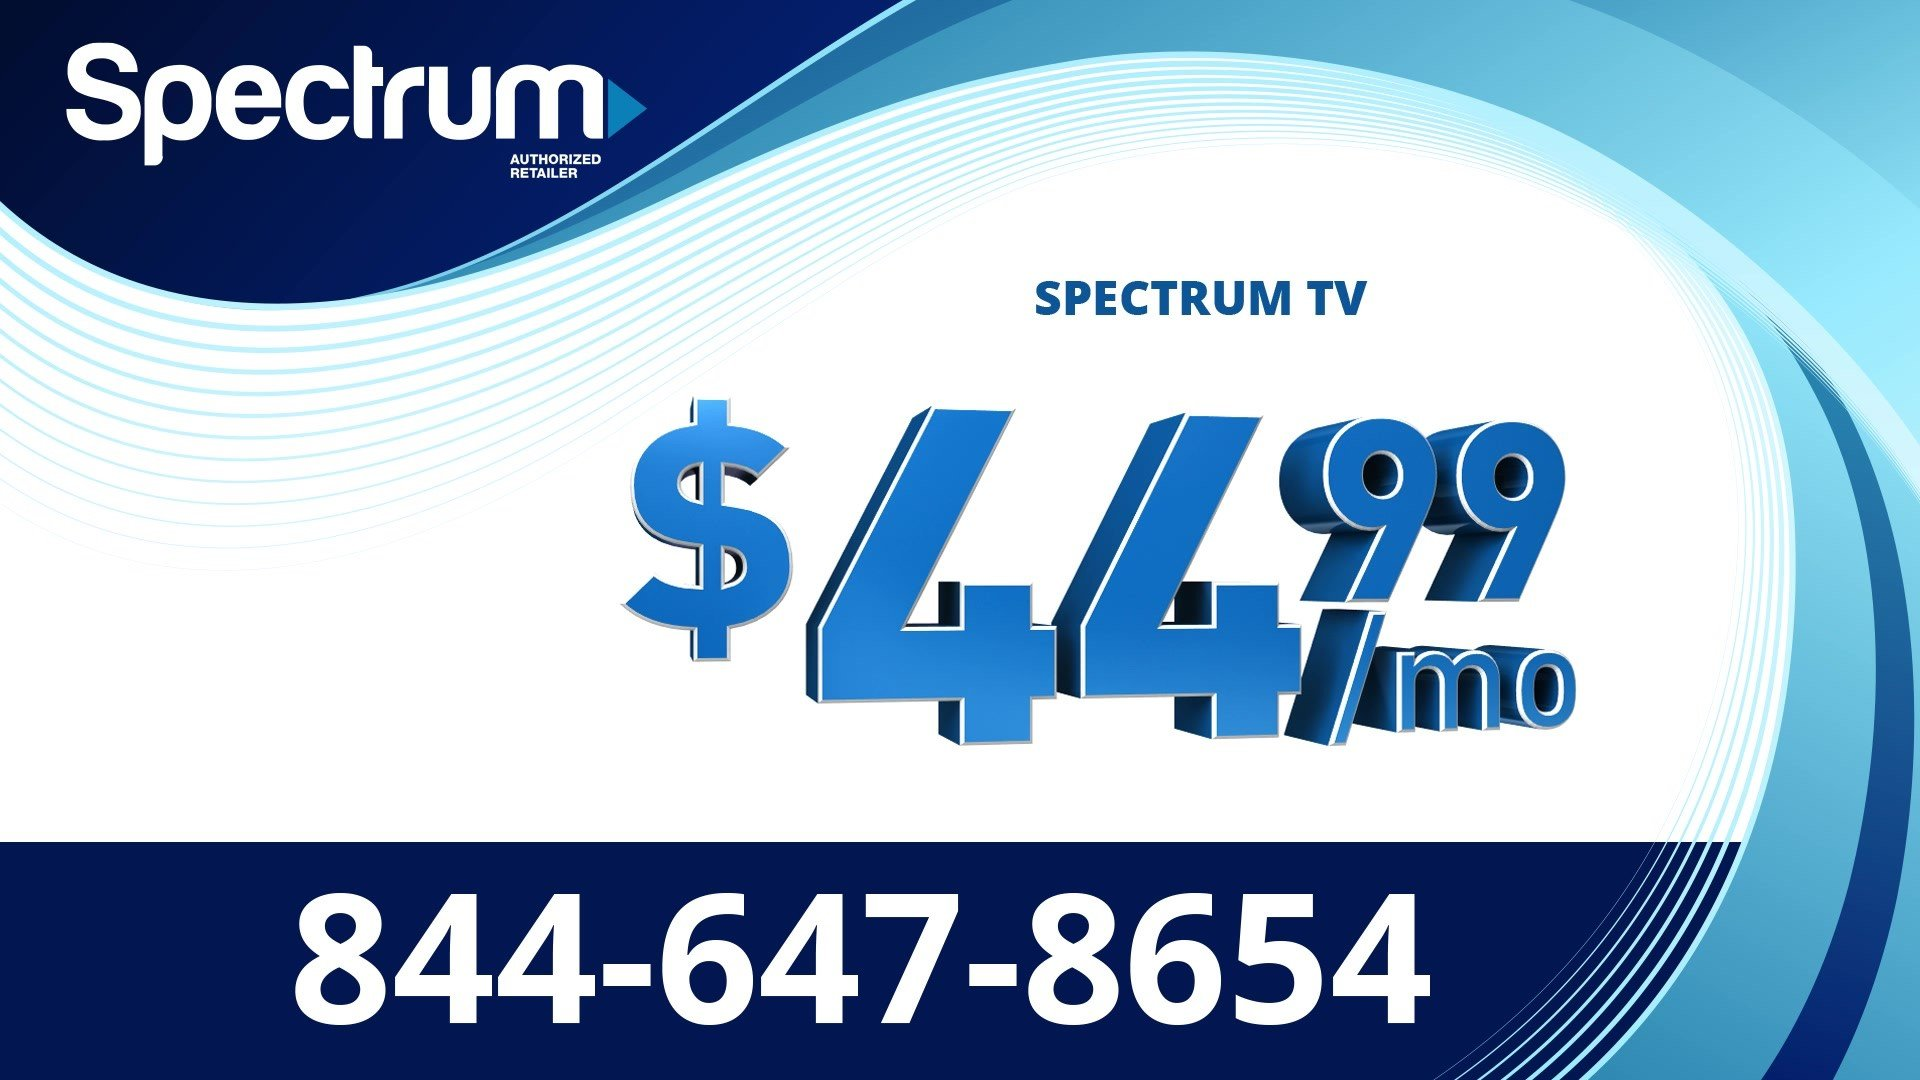 Spectrum Digital TV in Modesto - Learn More by Calling 844-647-6614